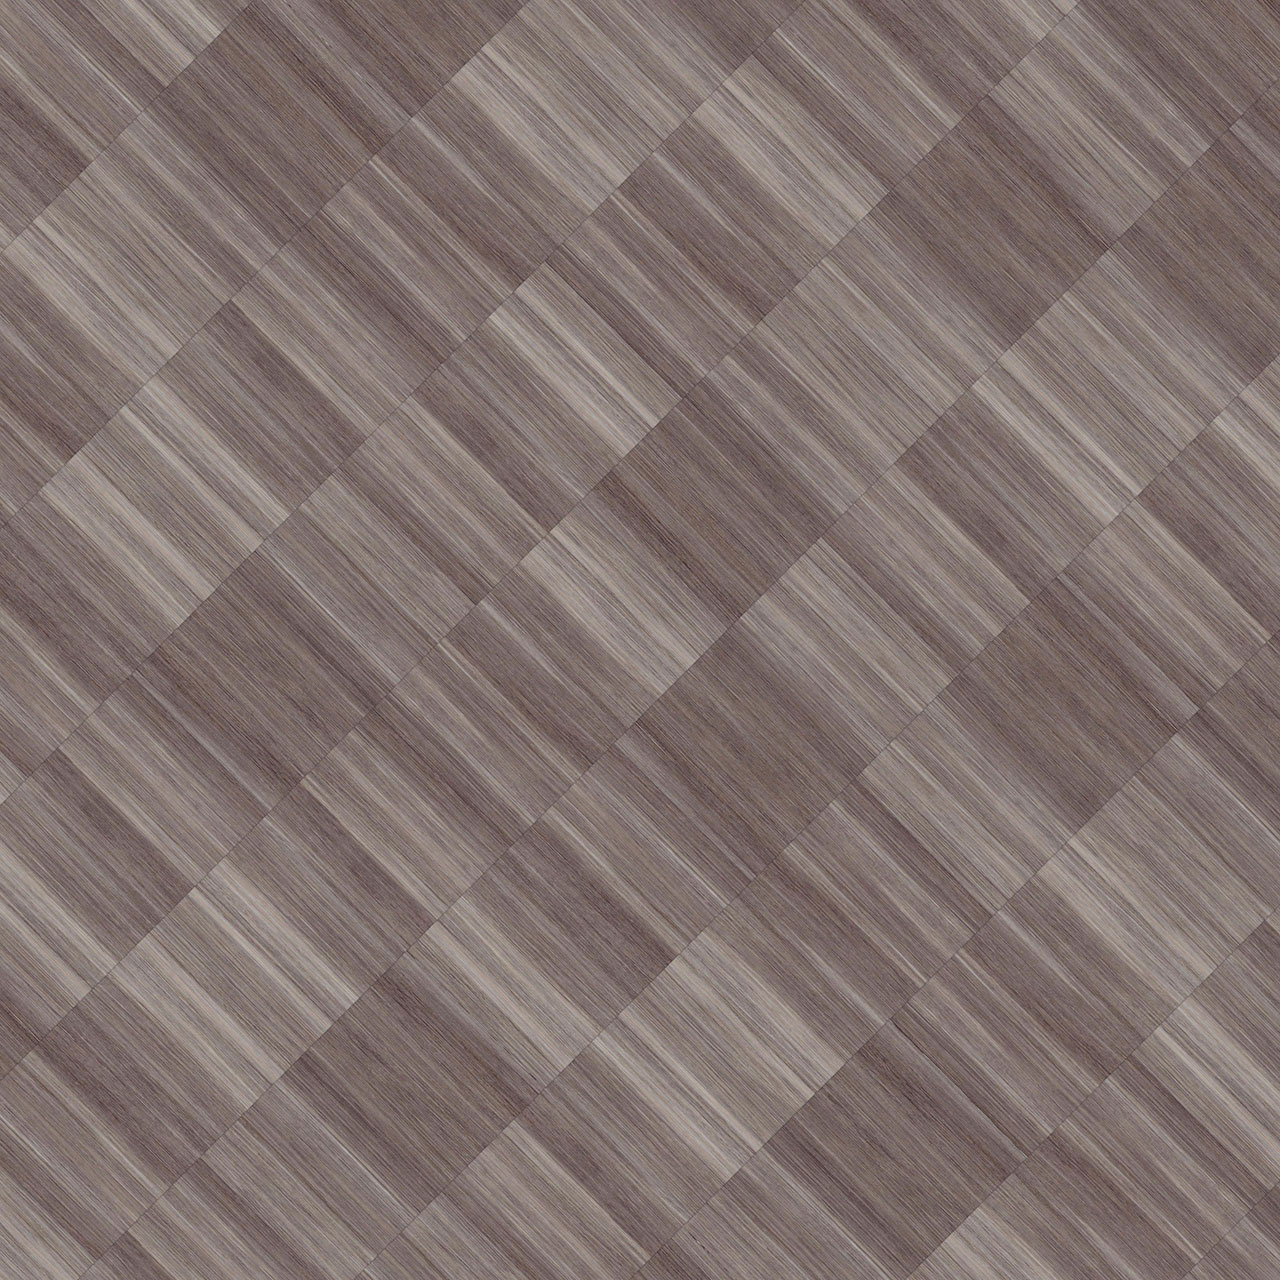 Mirus Hemp Beautifully Designed Lvt Flooring From The Amtico Spacia Collection Amtico For Your Home